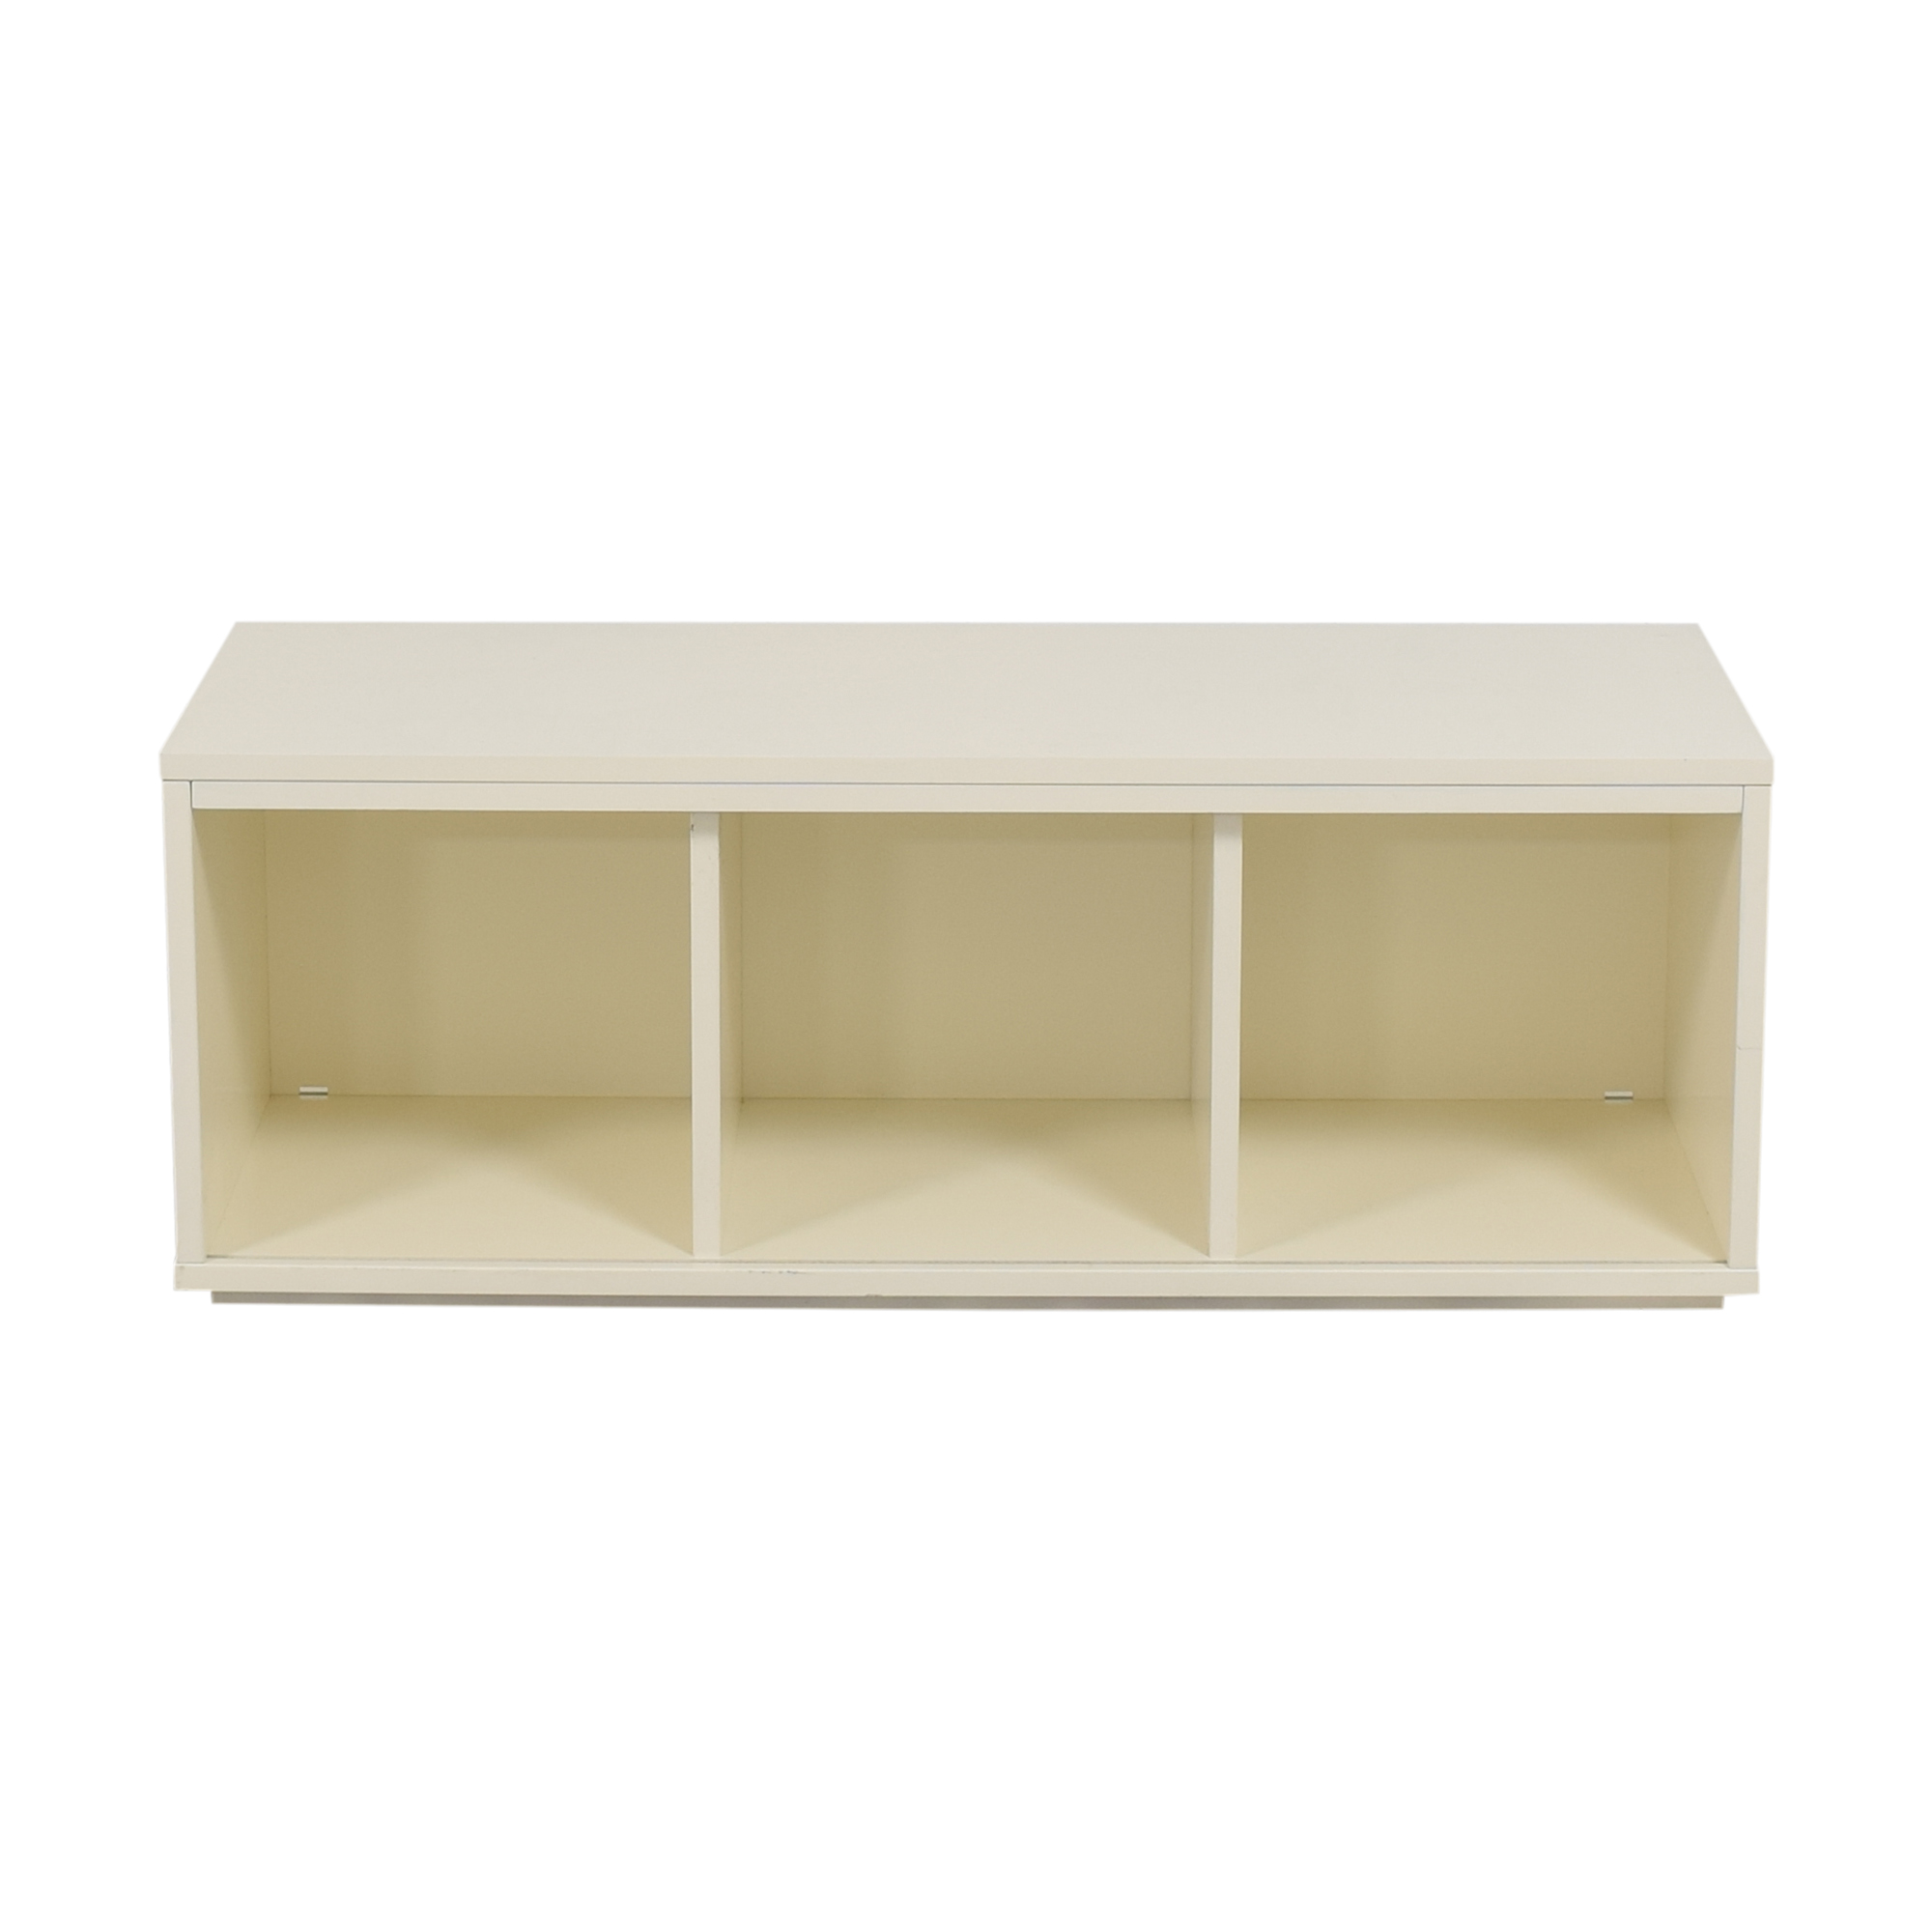 Crate & Barrel District Three-Cube Stackable Bookcase sale